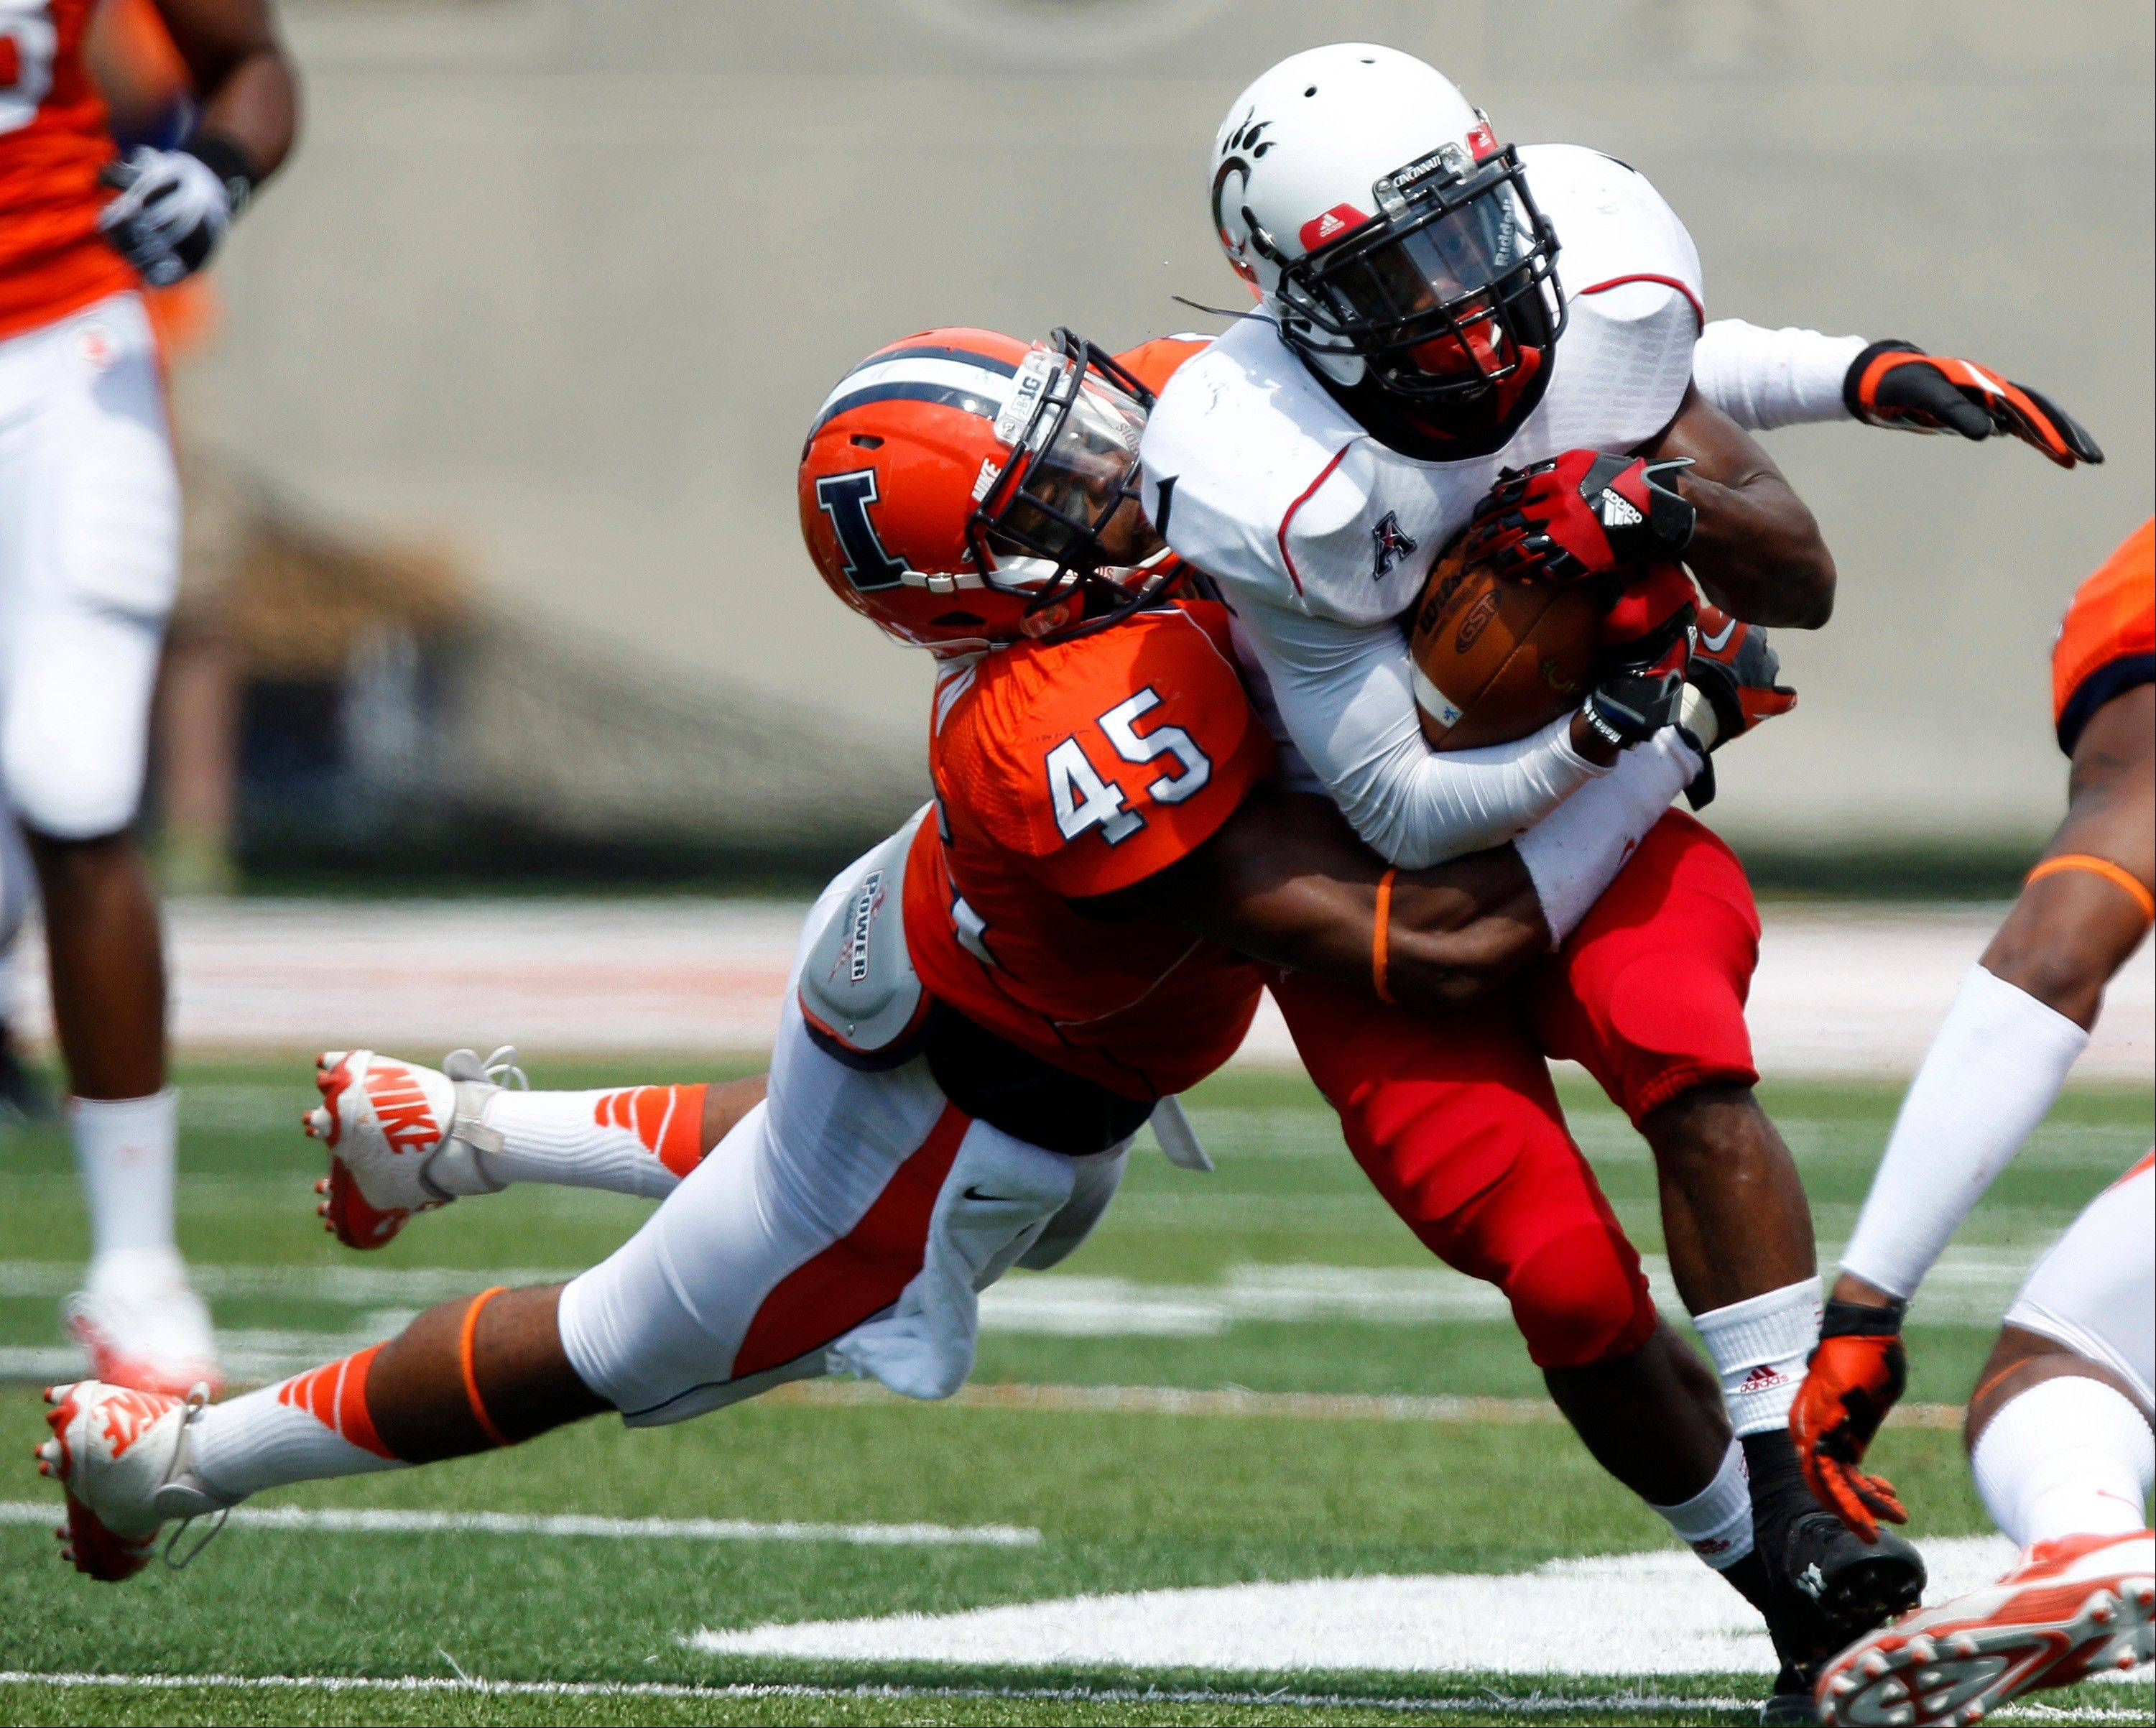 Cincinnati Bearcats running back Ralph Abernathy is tackled by Illinois linebacker Jonathan Brown during the first half Saturday in Champaign.